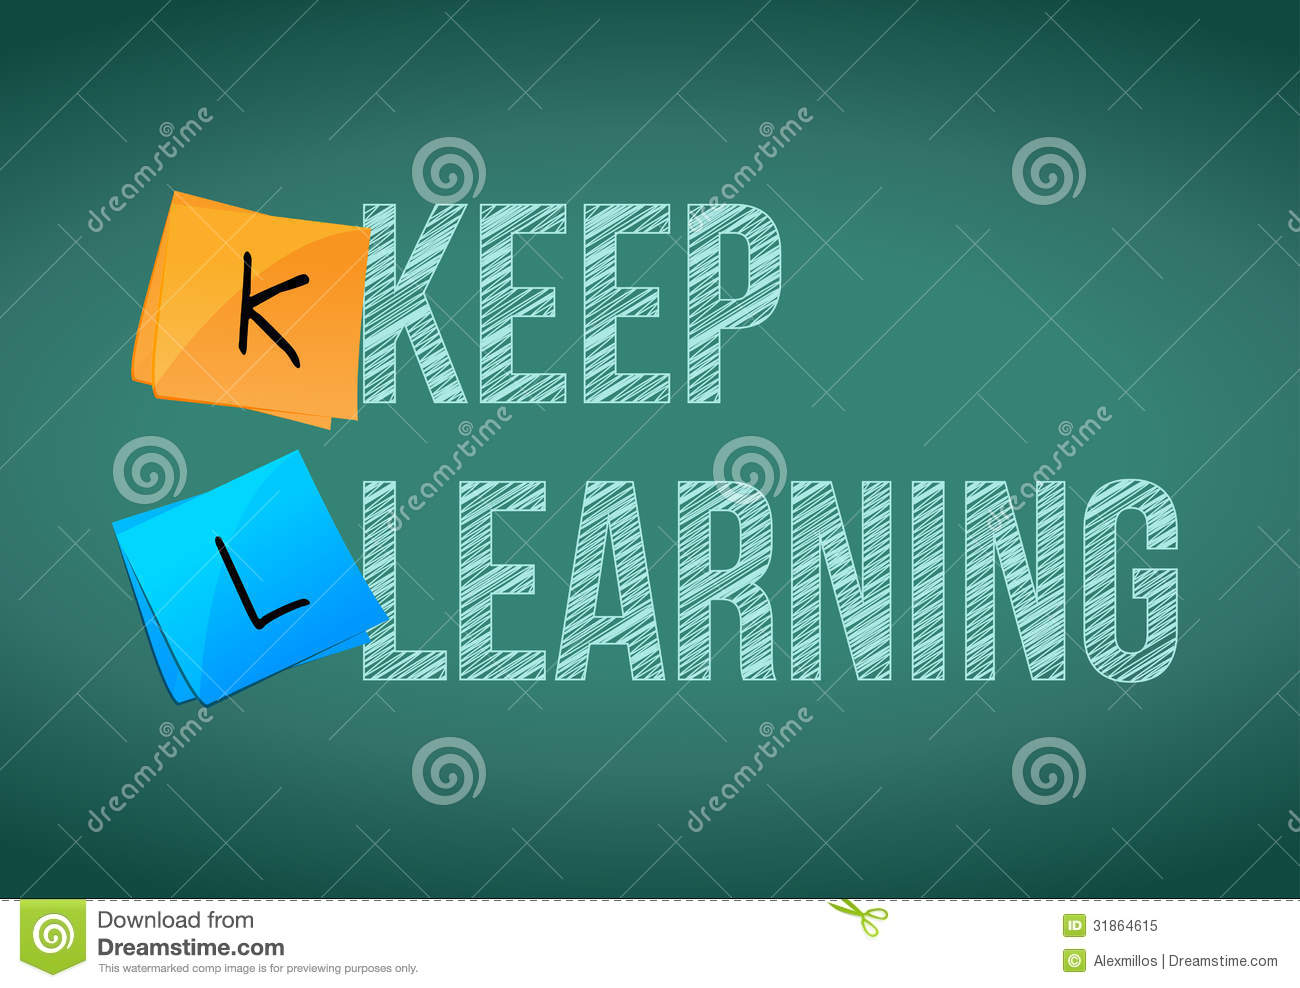 Only Metaphor >> Keep Learning Education Concept Stock Illustration - Illustration of handwriting, improvement ...